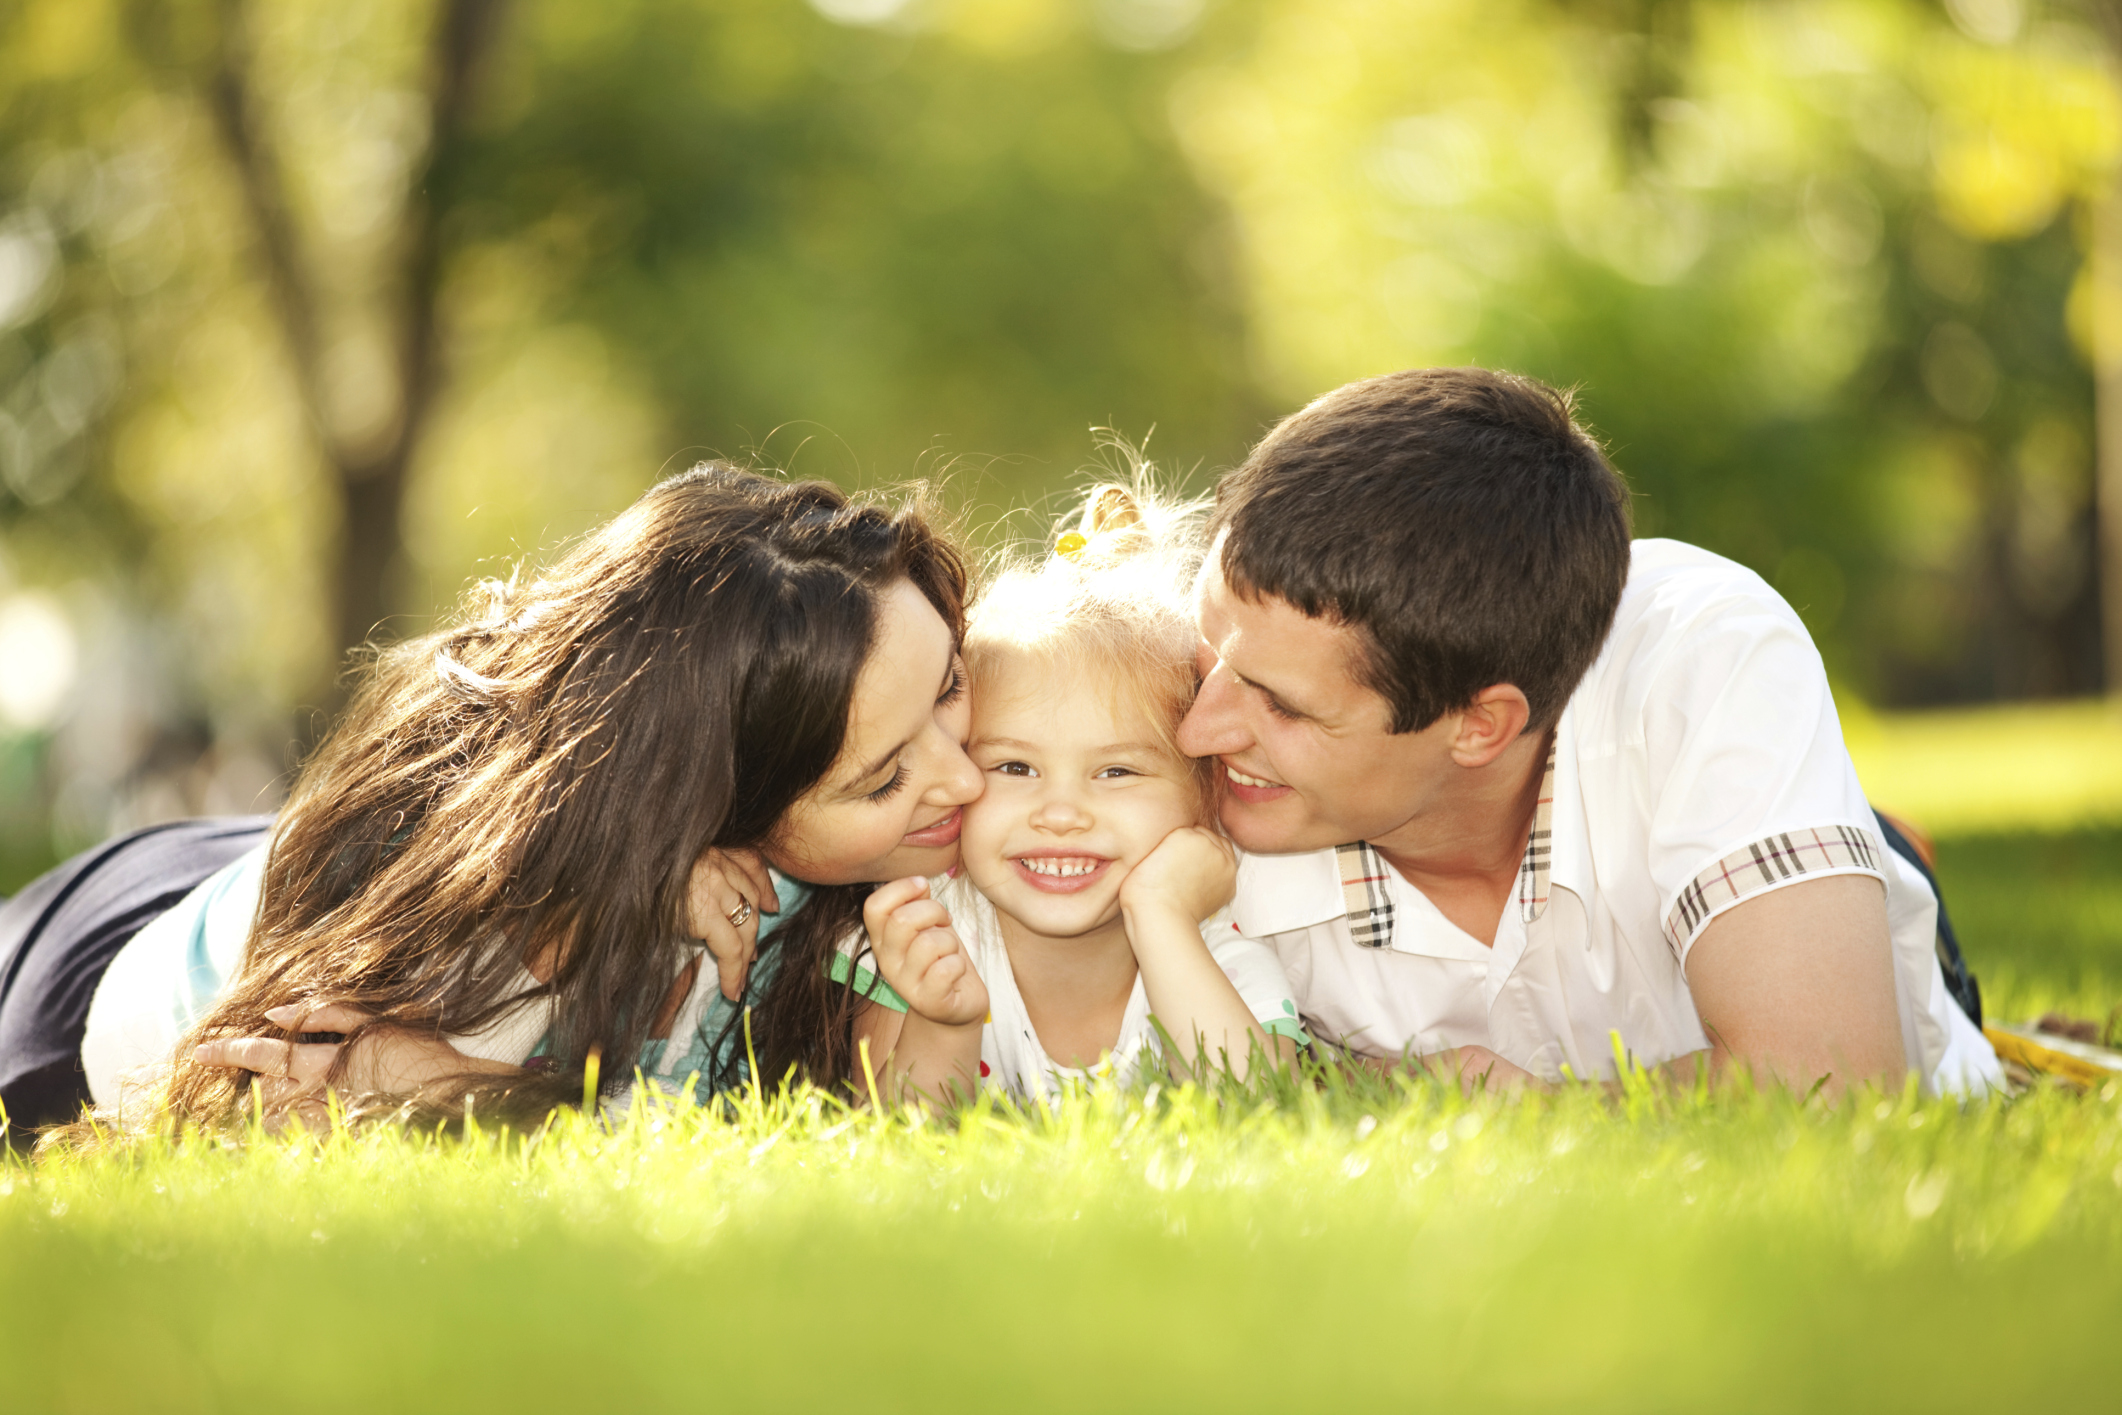 The Impact of Parenting Styles on Children's Development